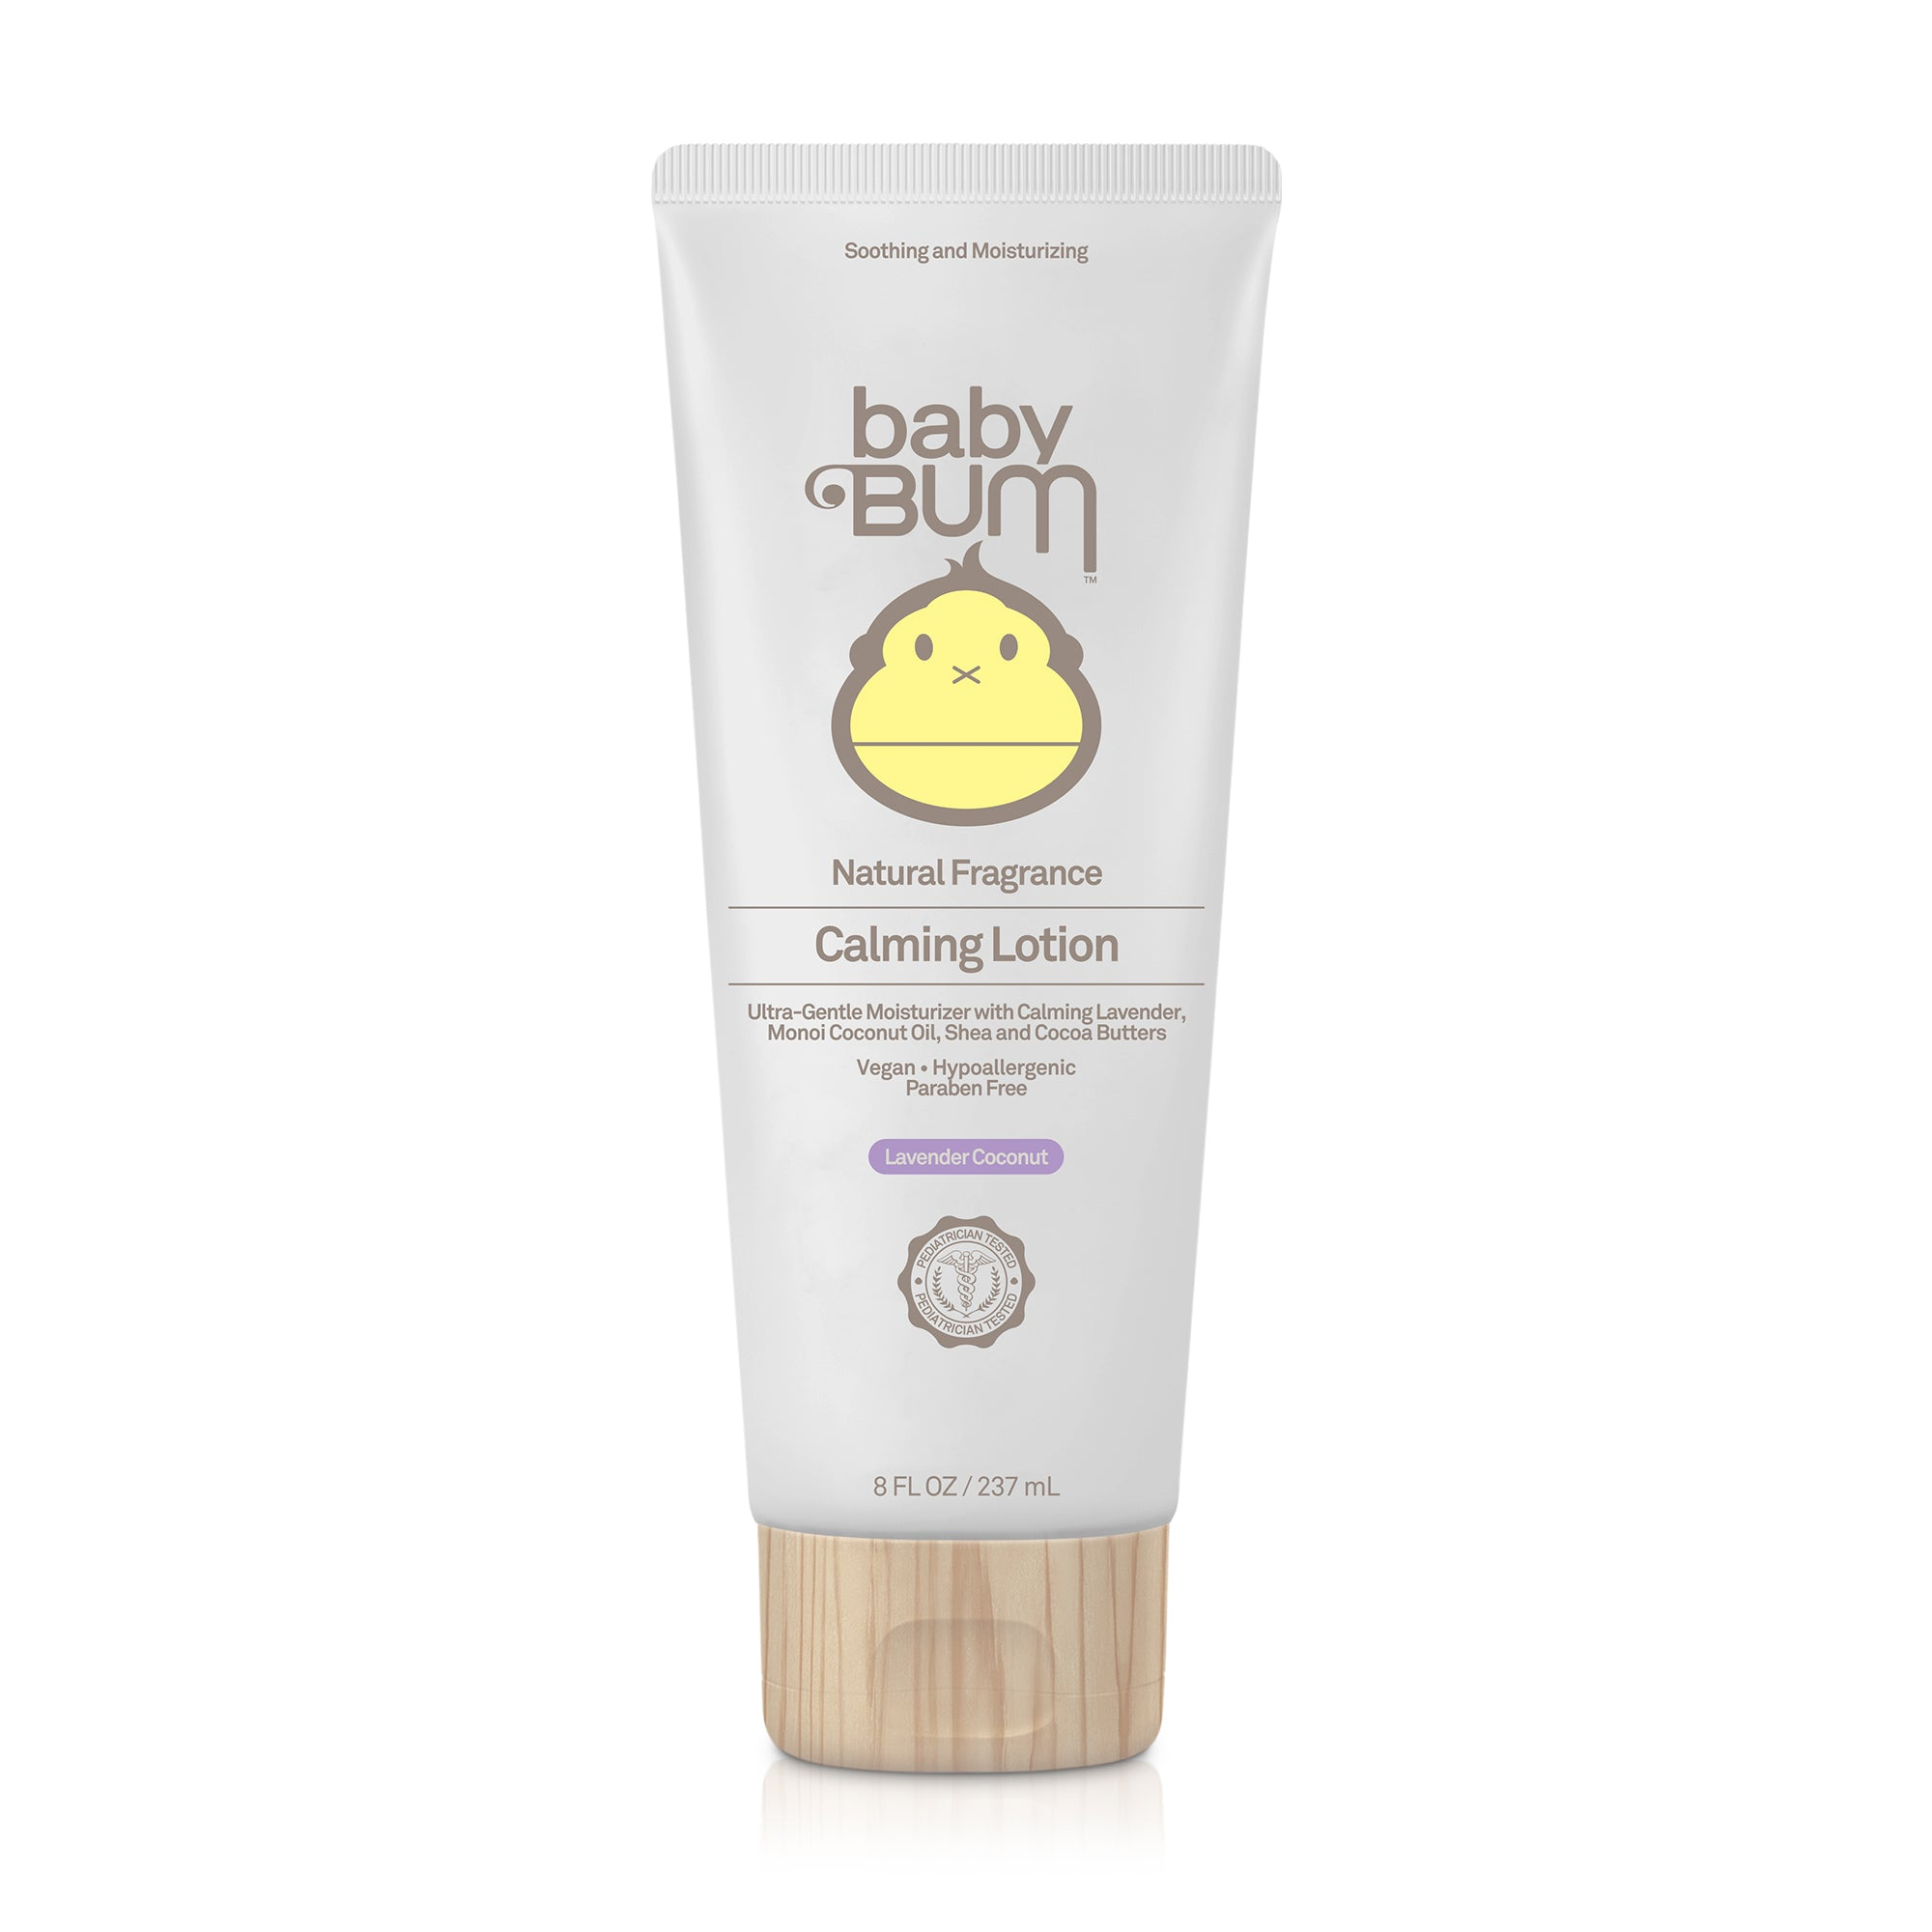 BABY BUM CALMING LOTION